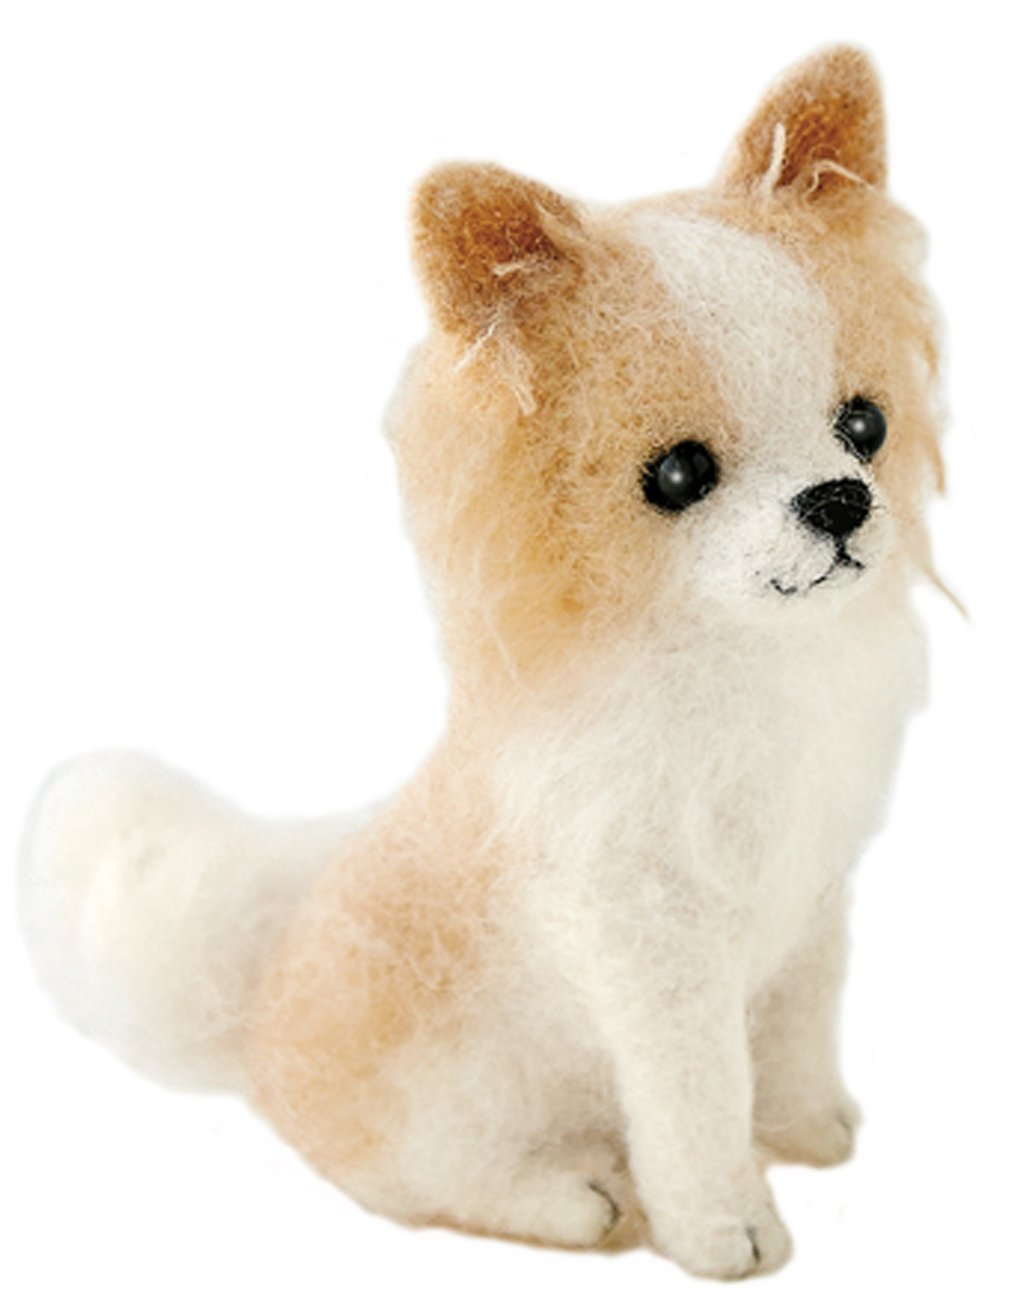 Hamanaka made of felt wool kit fluffy wool, felt dog Chihuahua (long coat) H441-422 Designed by Susa SunaTomoko